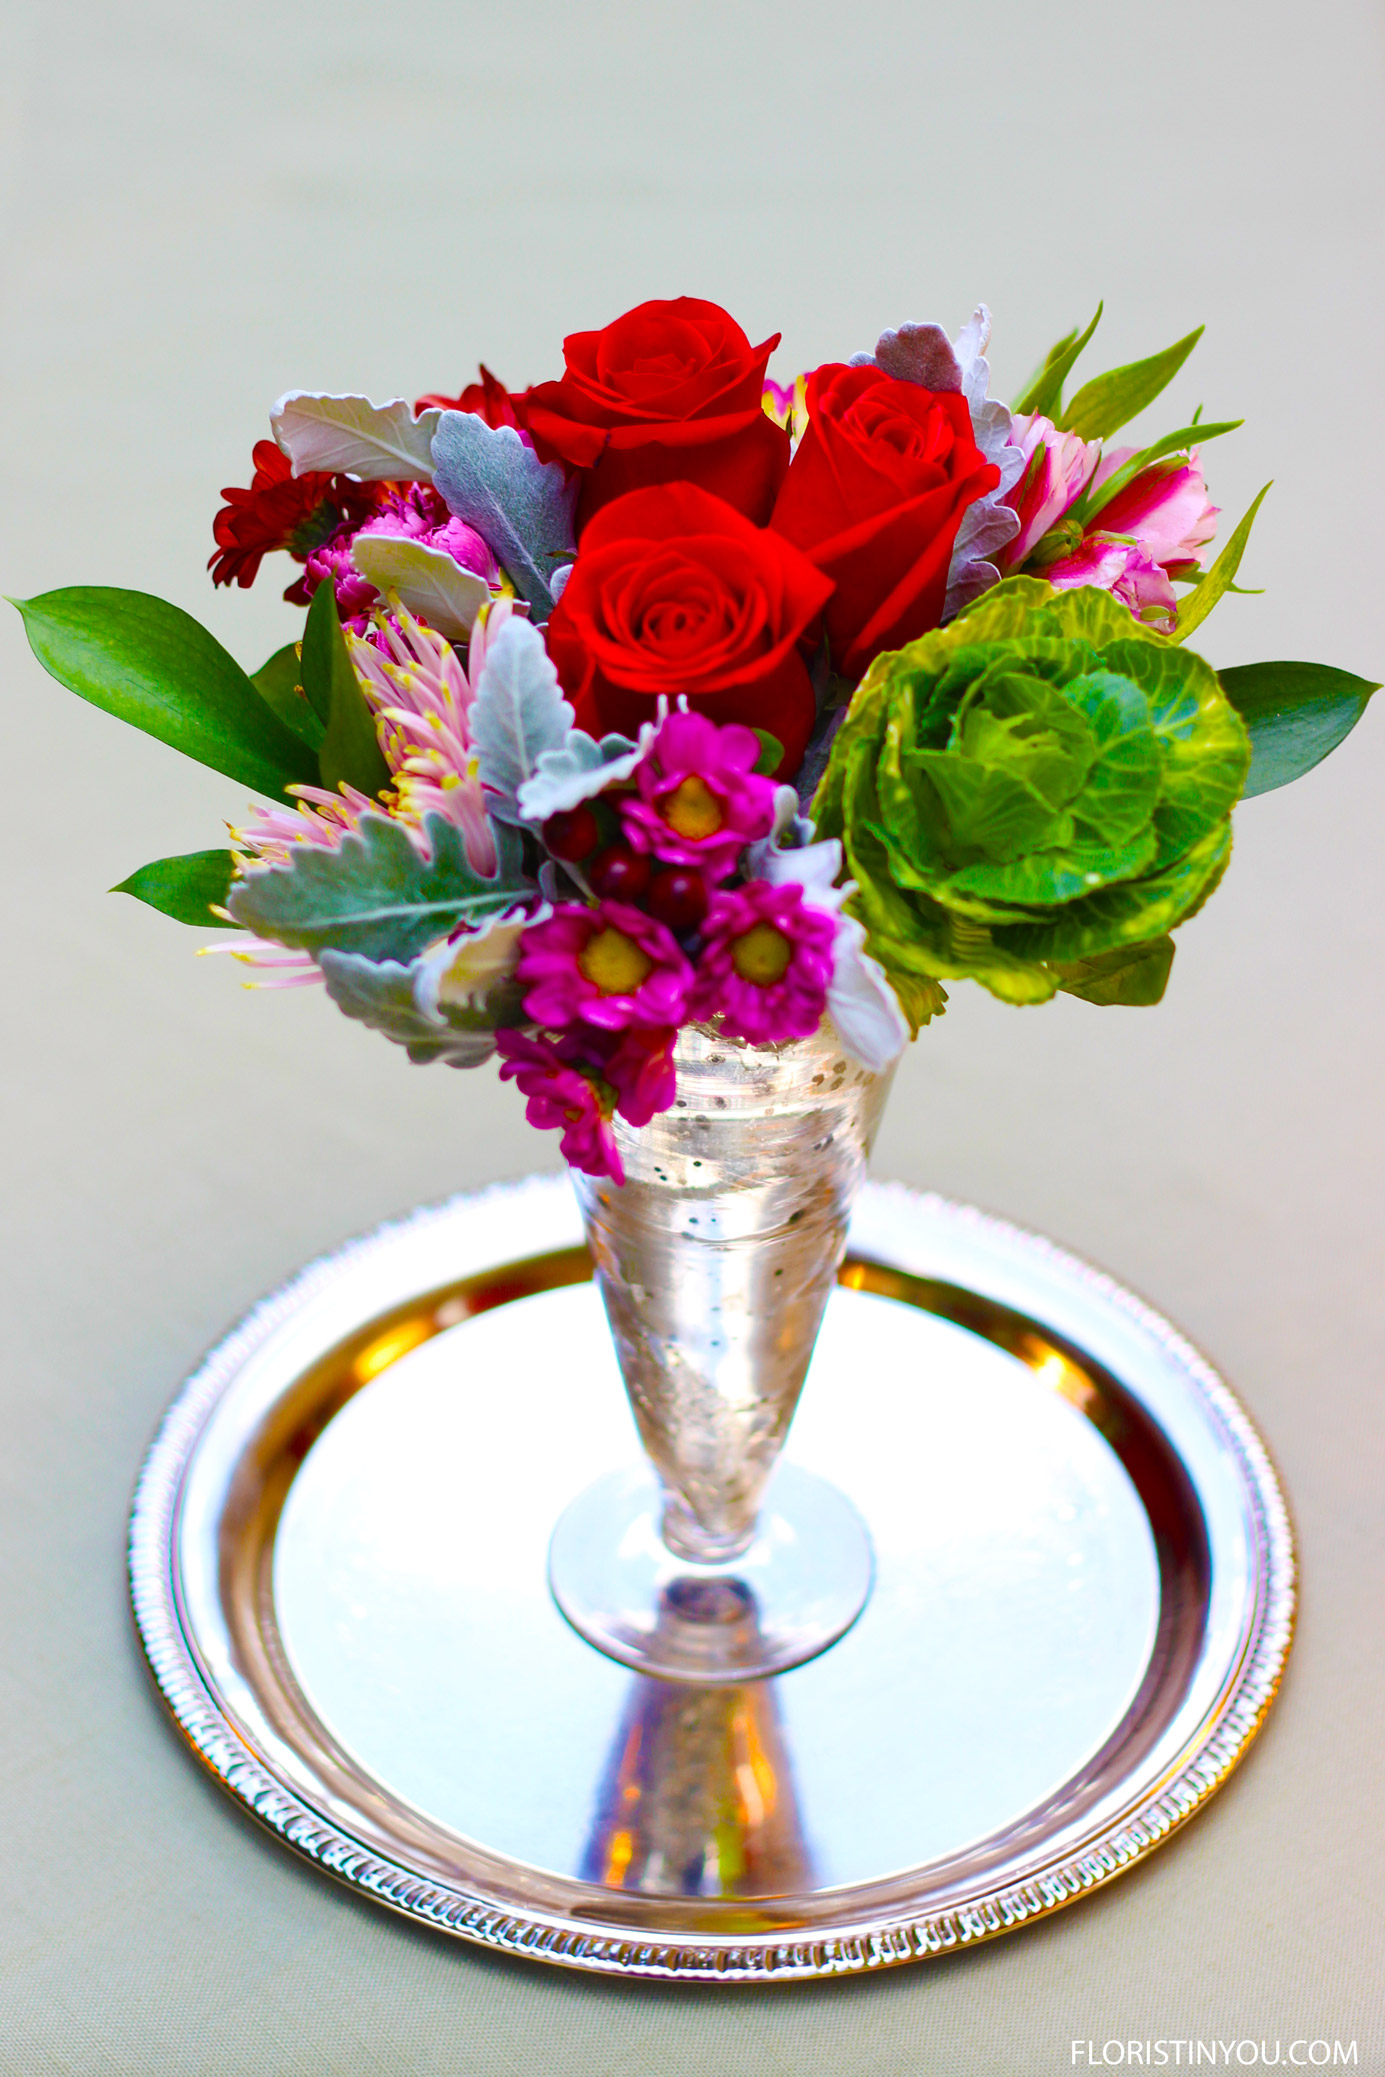 Dressing up a Grocery Store Petite Bouquet